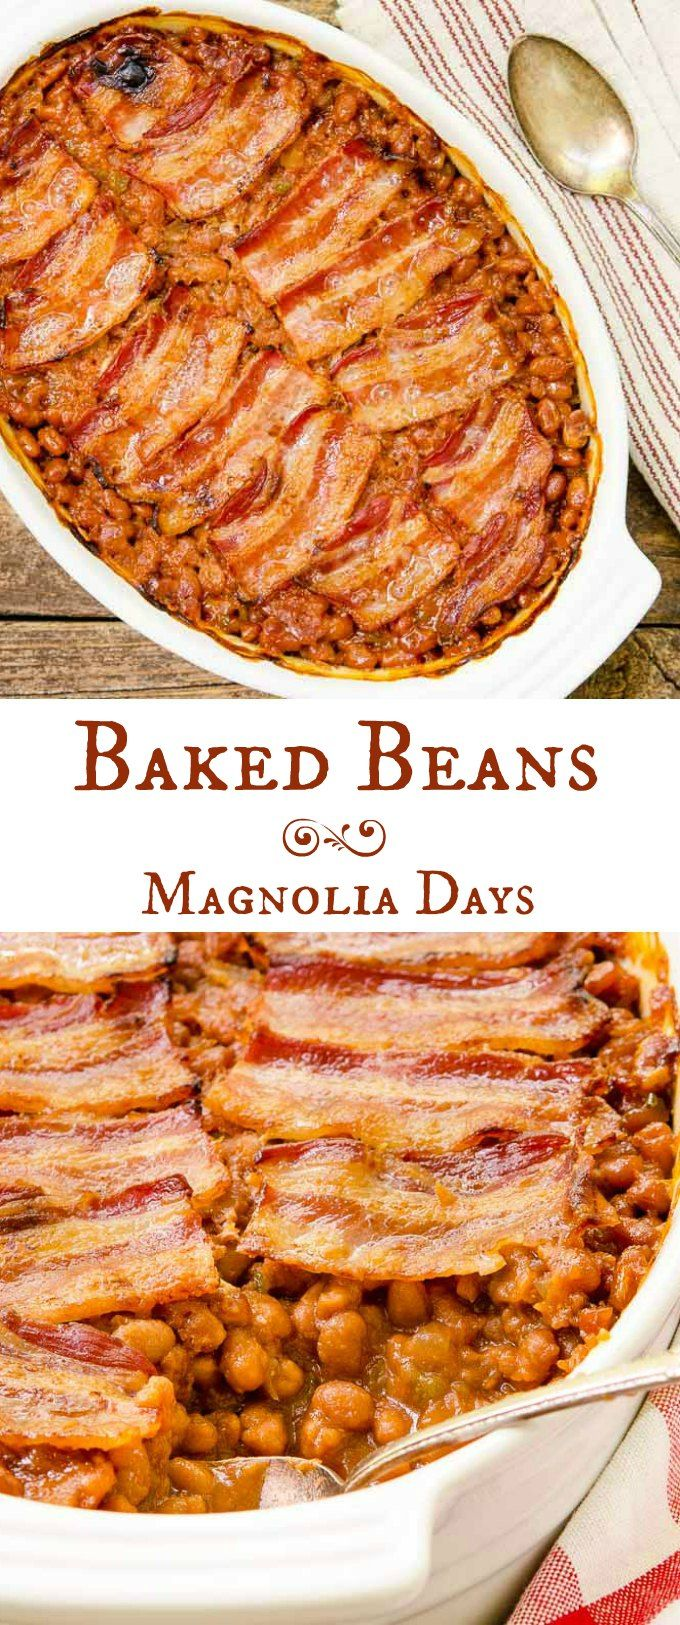 Baked Beans with bacon is a classic side dish popular at summer barbecues and potlucks. Serve it with burgers, ham, chicken, and BBQ pork.